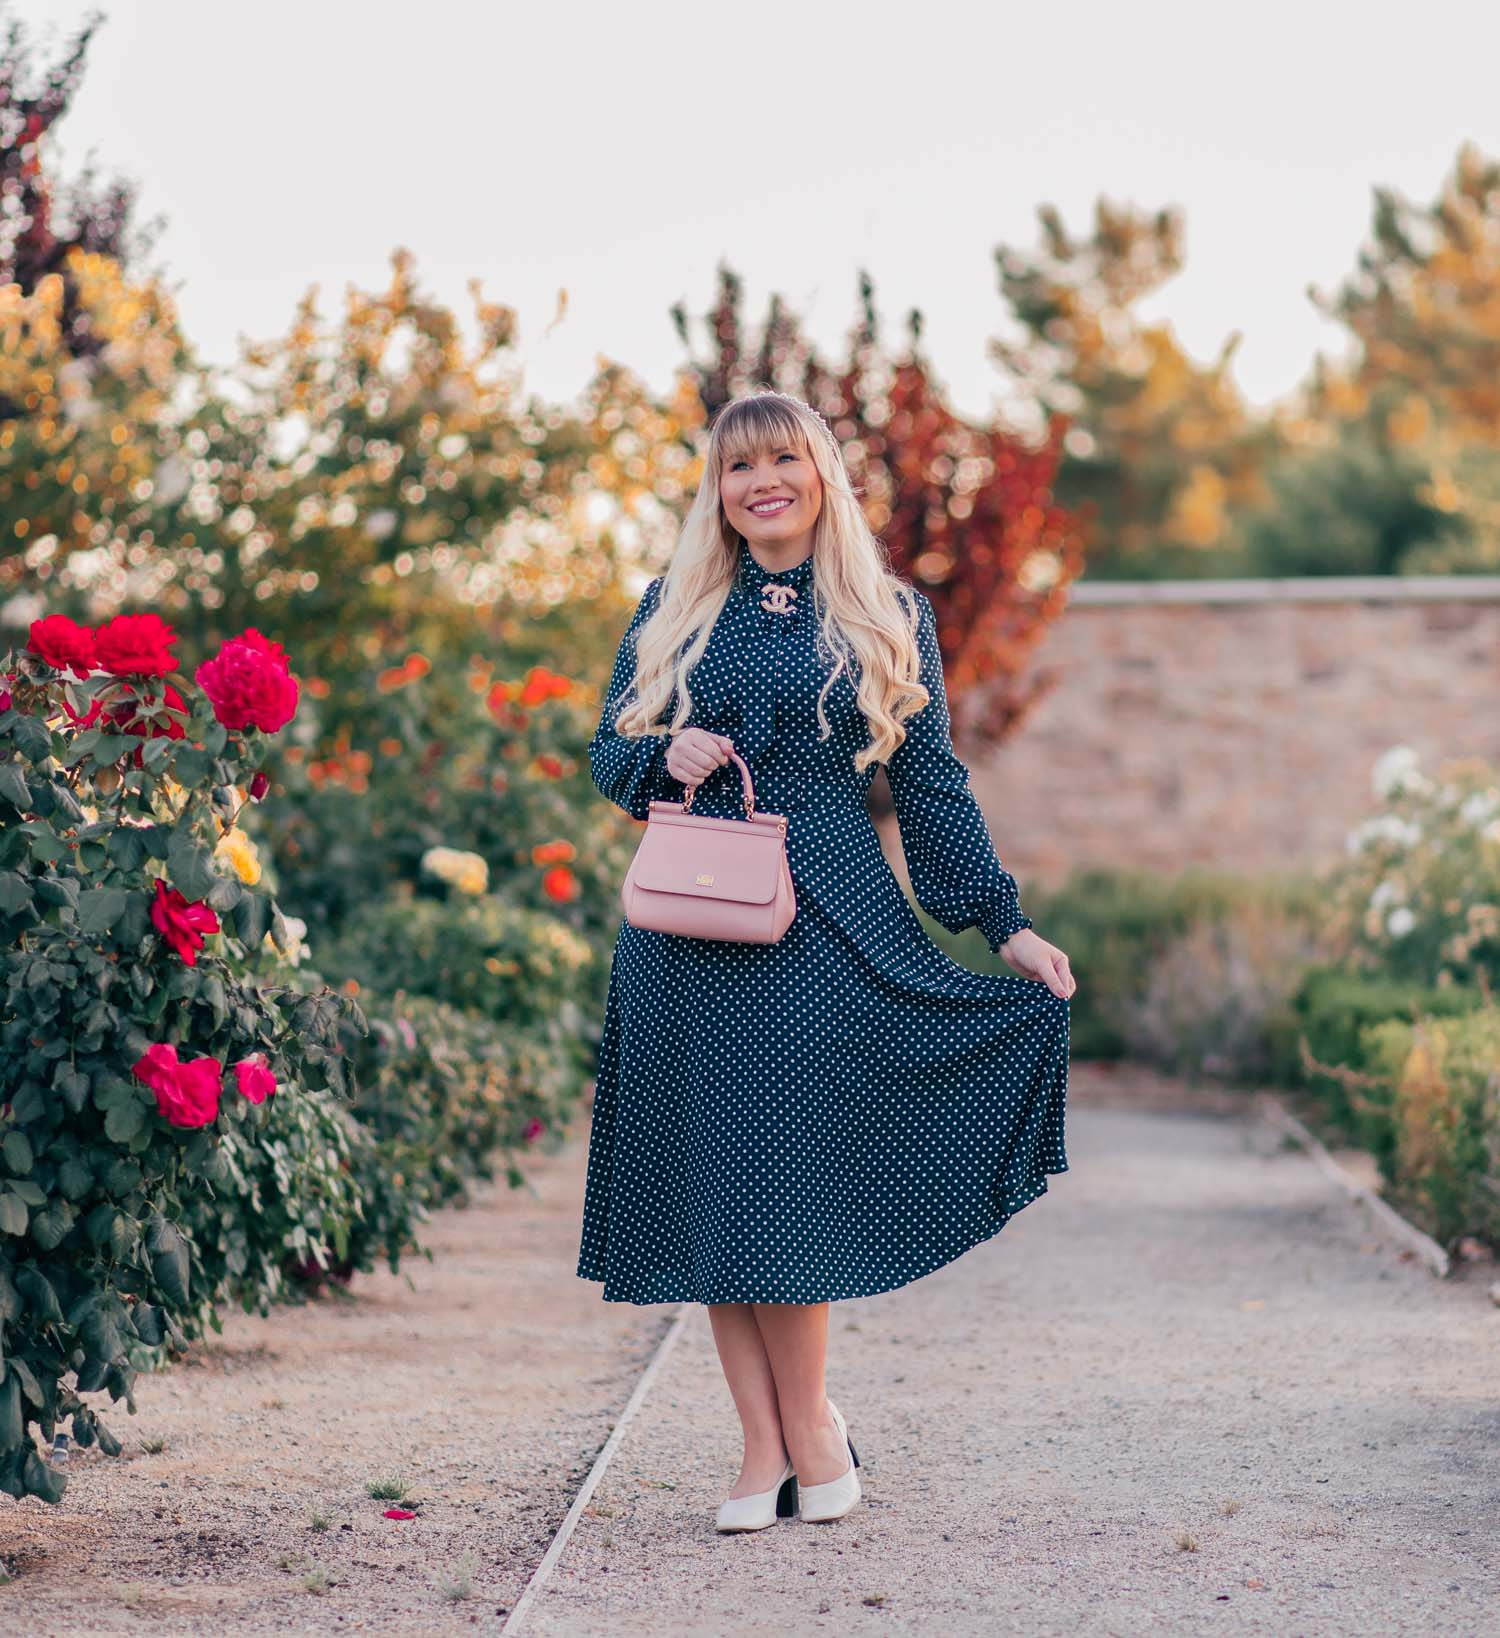 Fashion blogger Elizabeth Hugen of Lizzie in Lace wears a vintage style fall outfit including an emerald green polka dot dress, white everlane heels and a pink Miss Sicily Dolce and Gabbana handbag